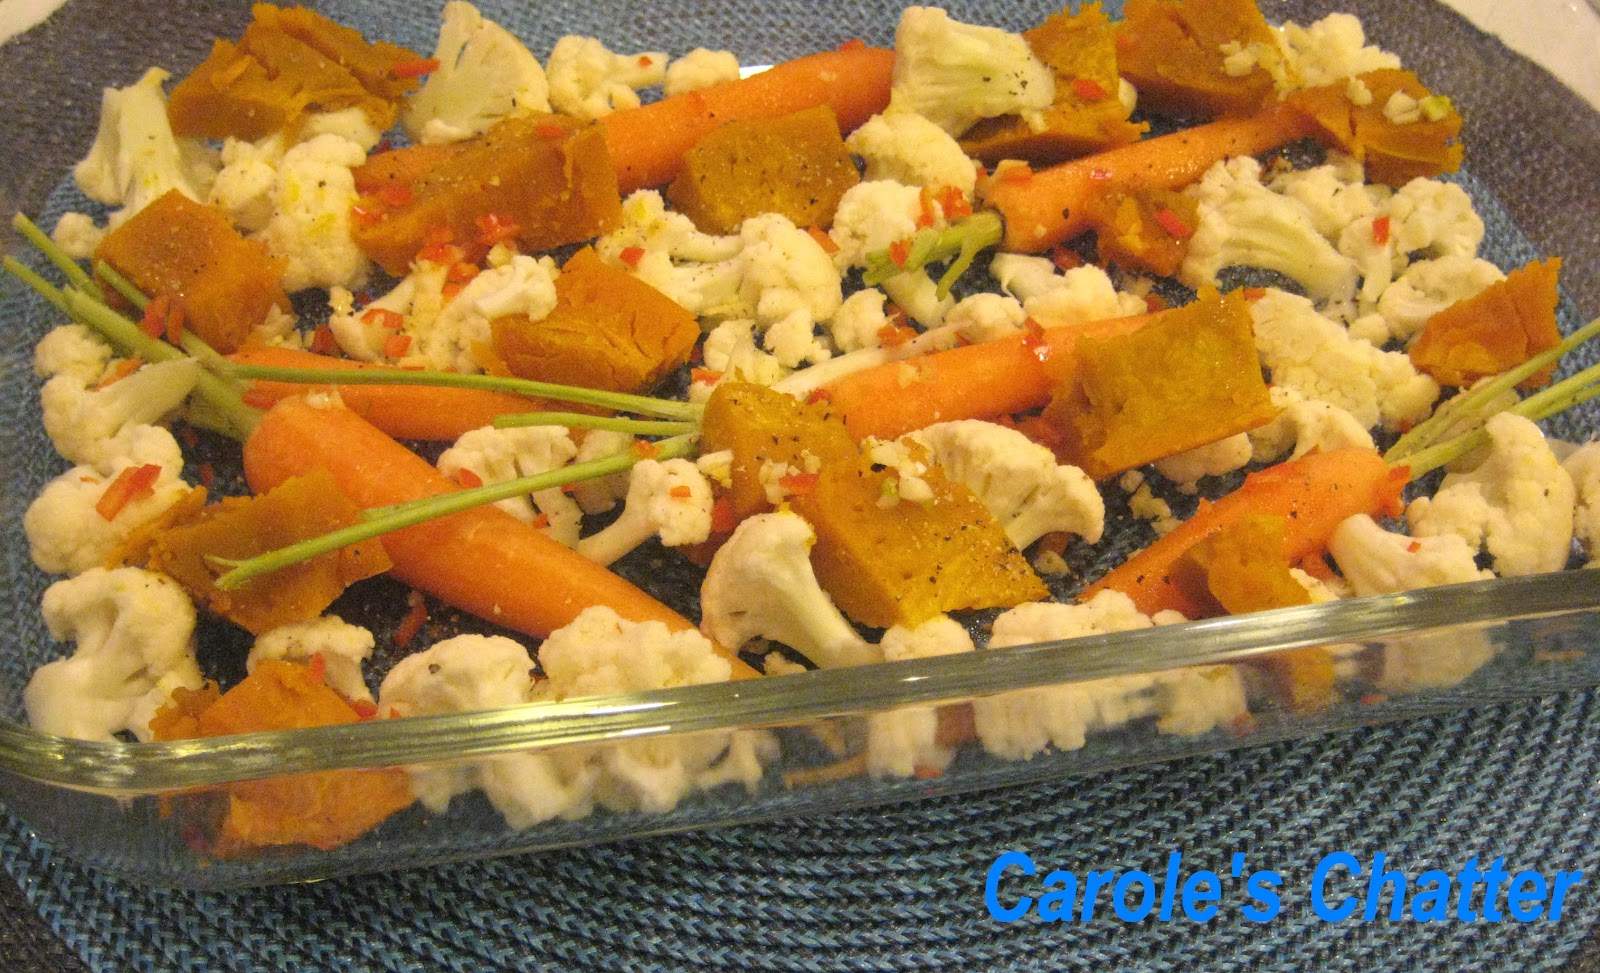 Carole S Chatter Medley Of Roasted Veggies